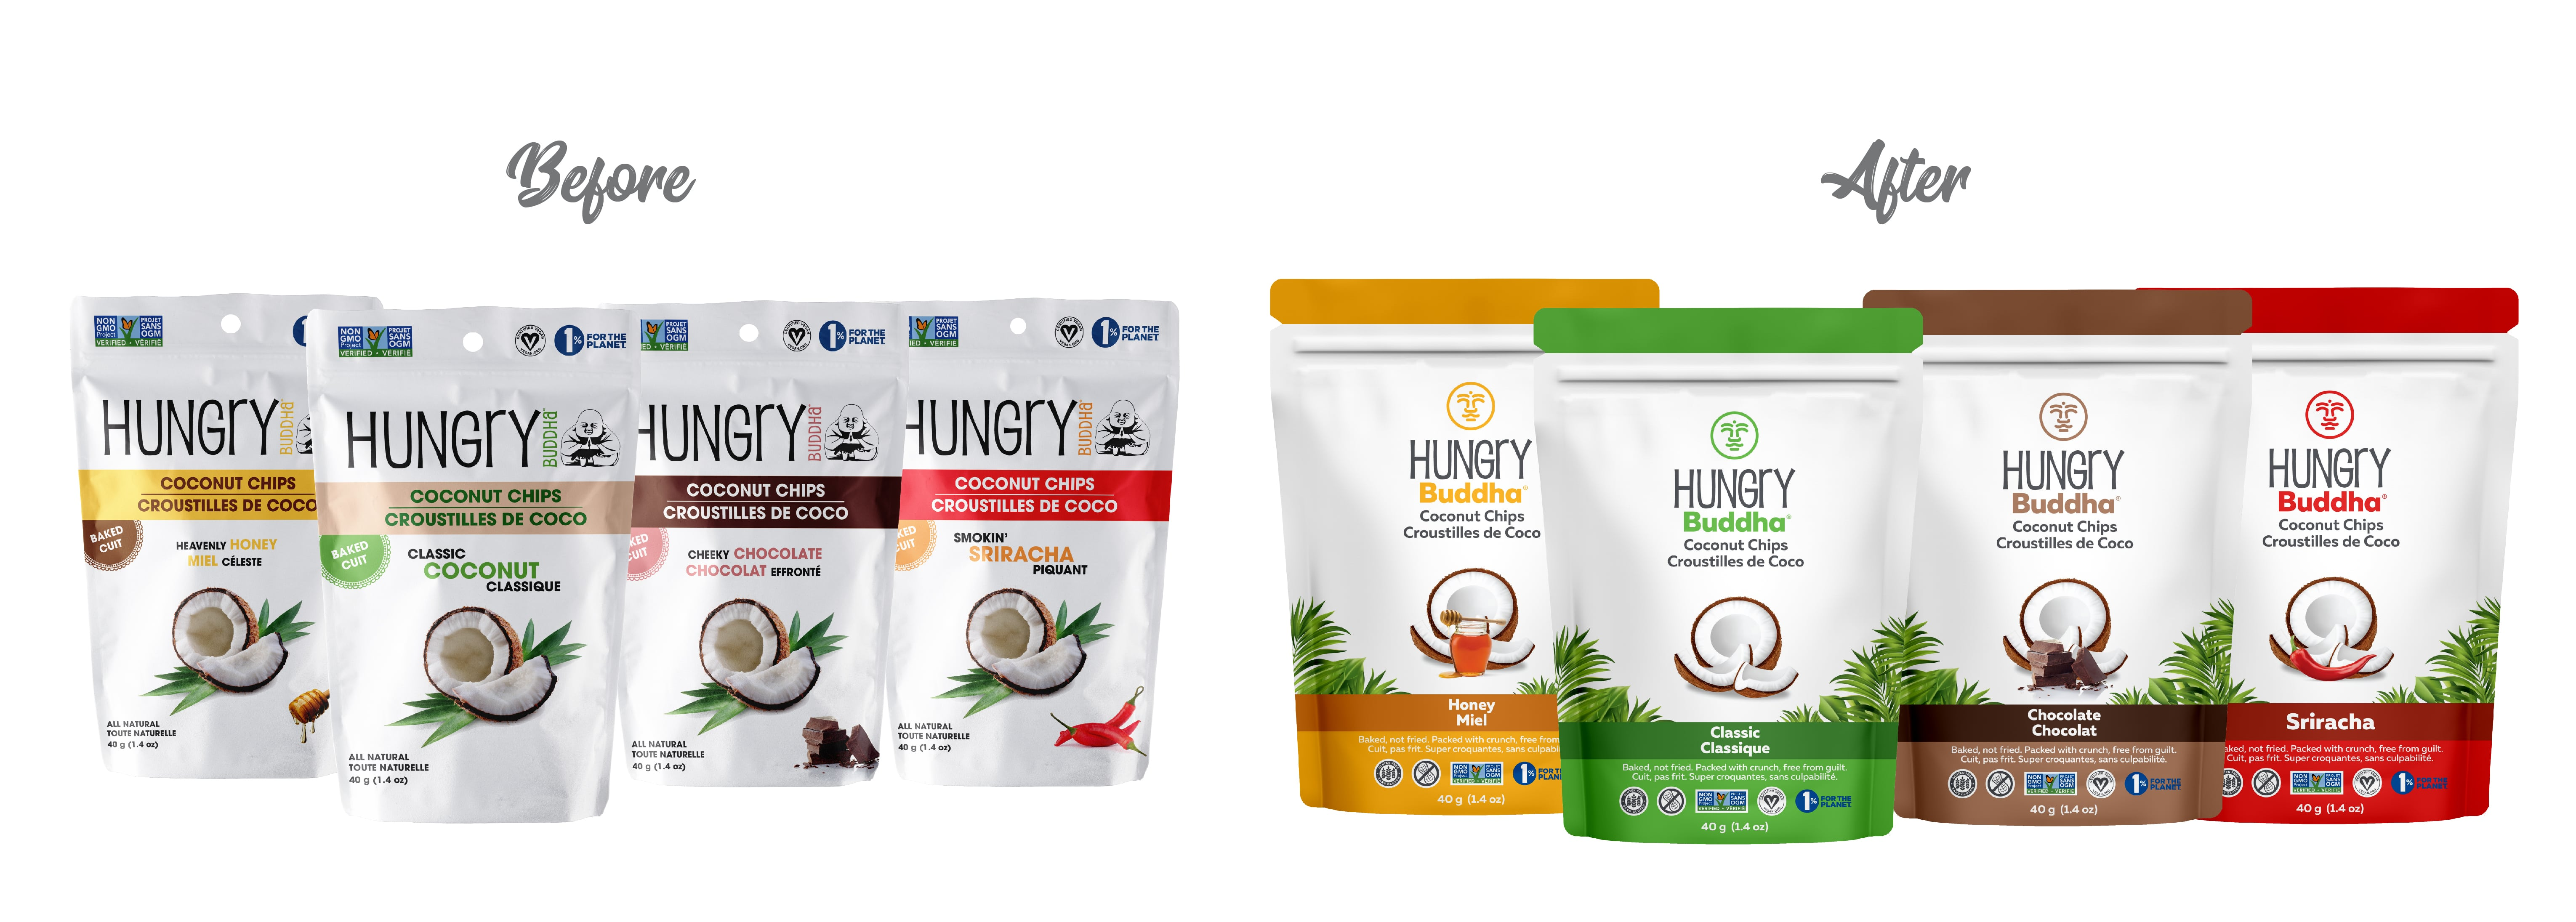 Buddha Brands Announces New Packaging